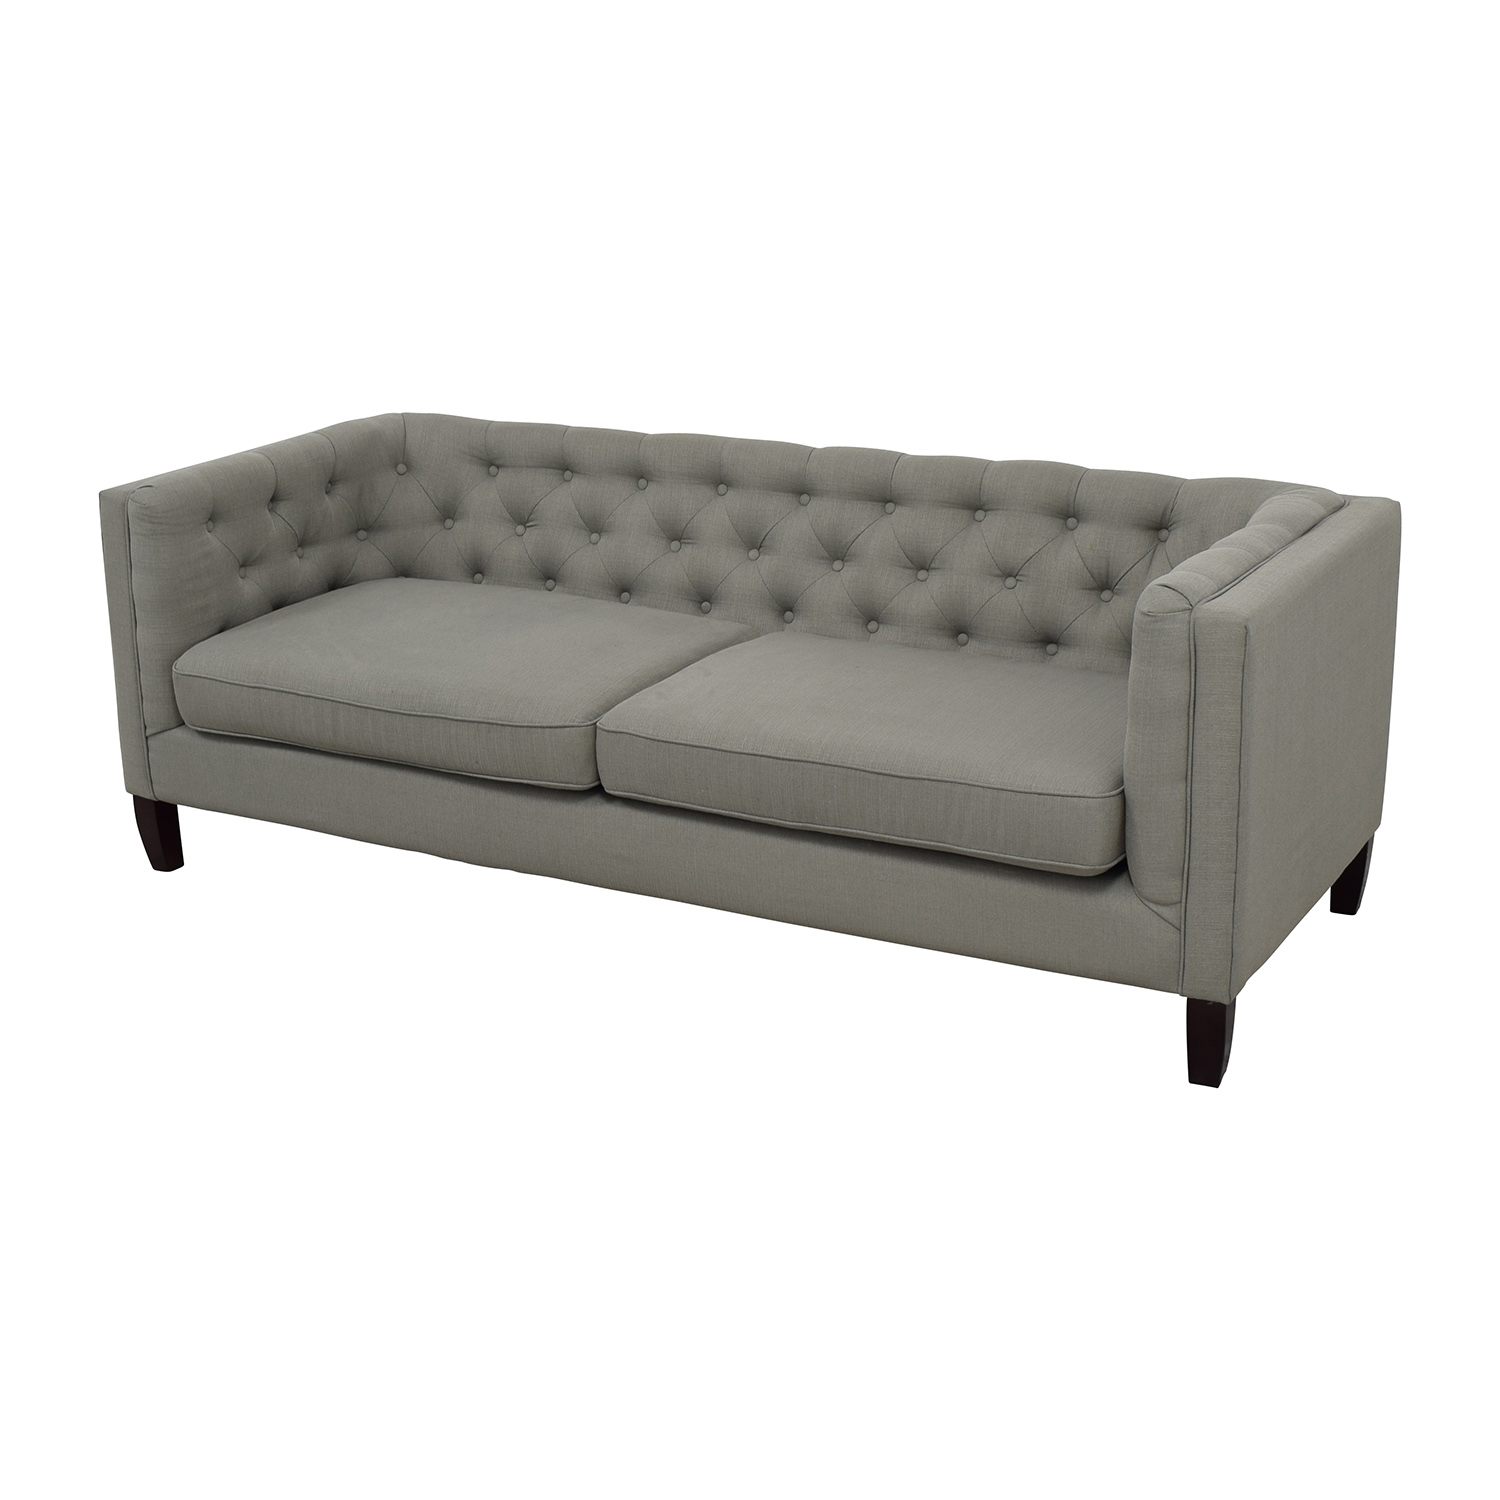 world market sofa bed sofas couches and loveseats world market thesofa. Black Bedroom Furniture Sets. Home Design Ideas